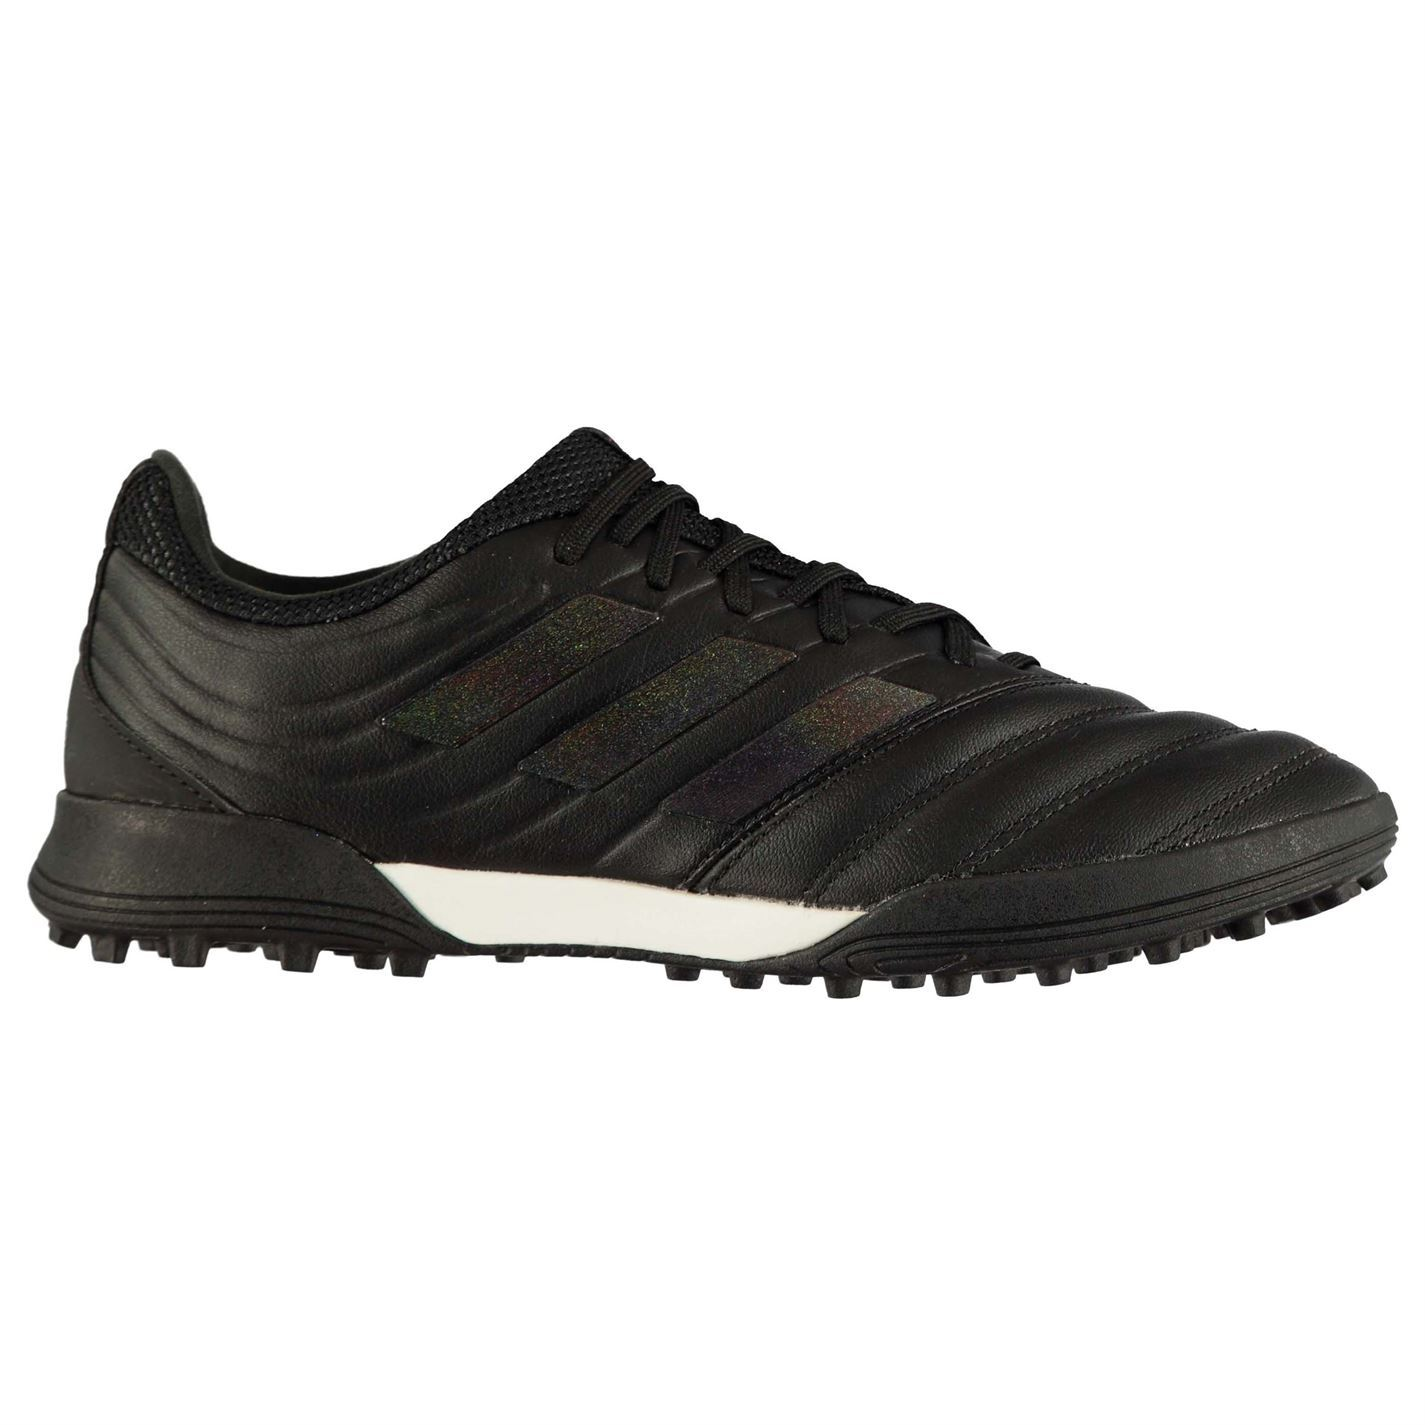 Adidas-Copa-19-3-Astro-Turf-Football-Chaussures-Homme-Football-Entrainement-Baskets miniature 4